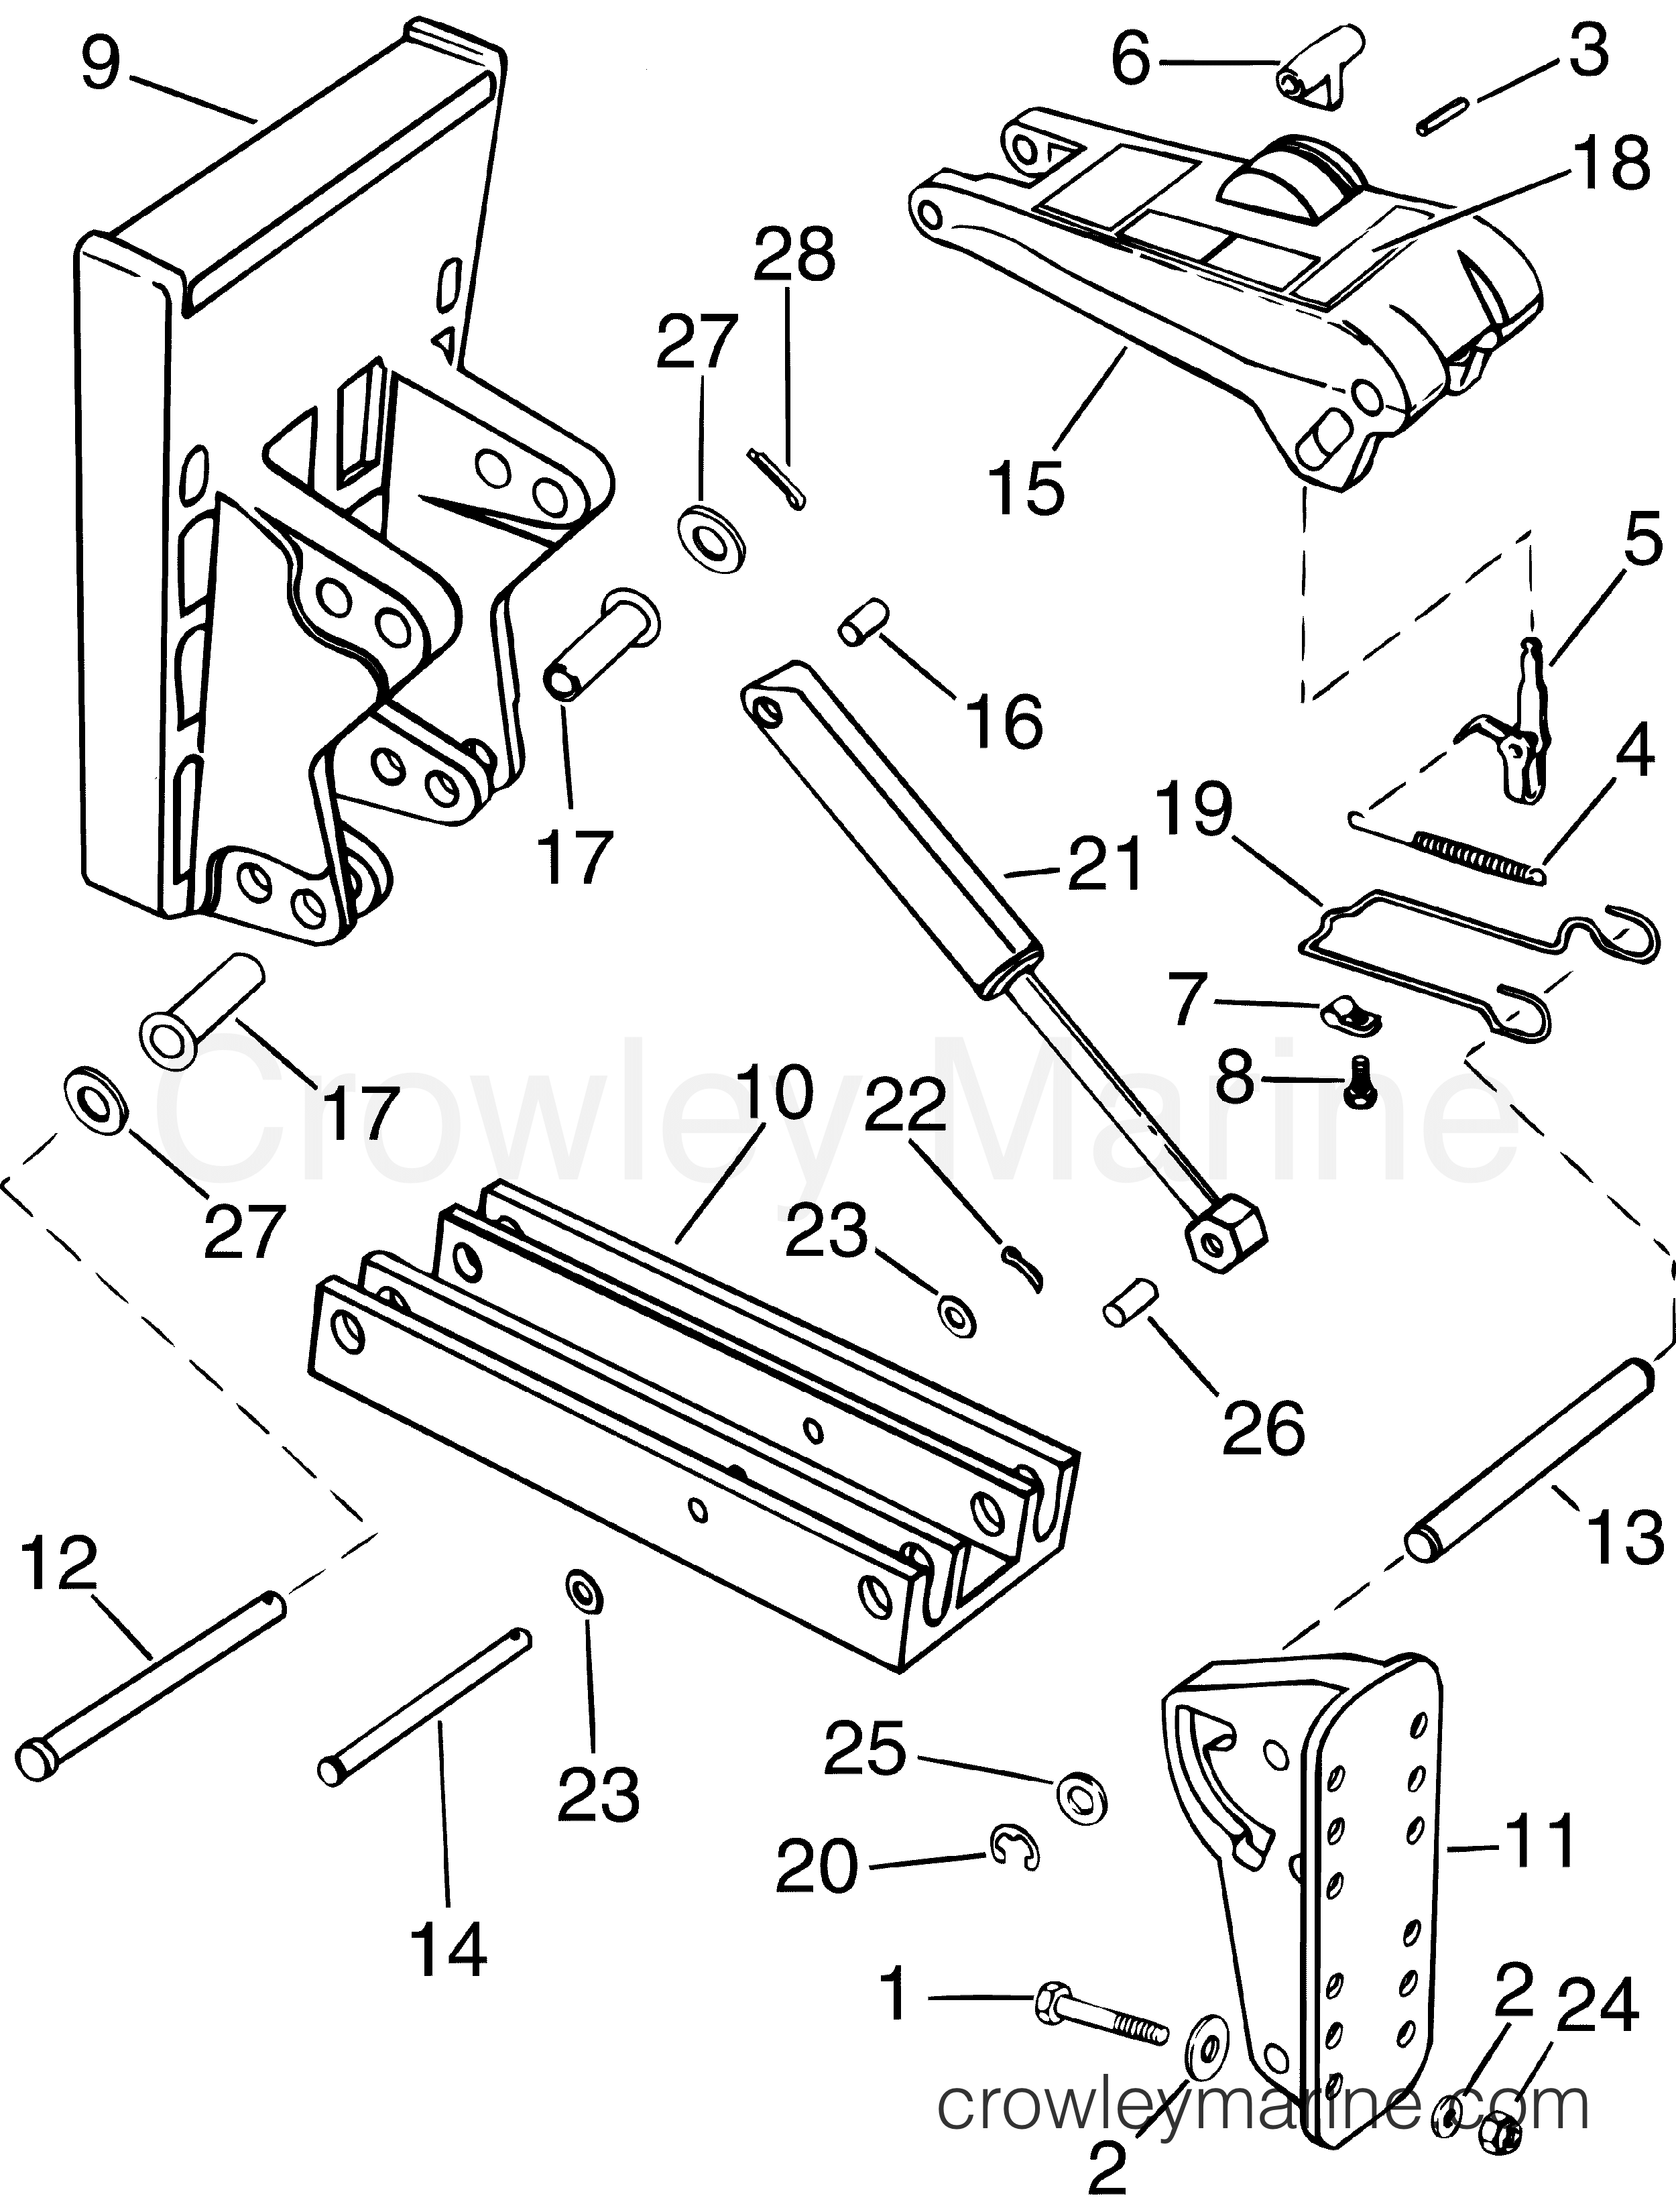 AUXILIARY ENGINE BRACKET - 125 LB (56.6 KG) CAPACITY